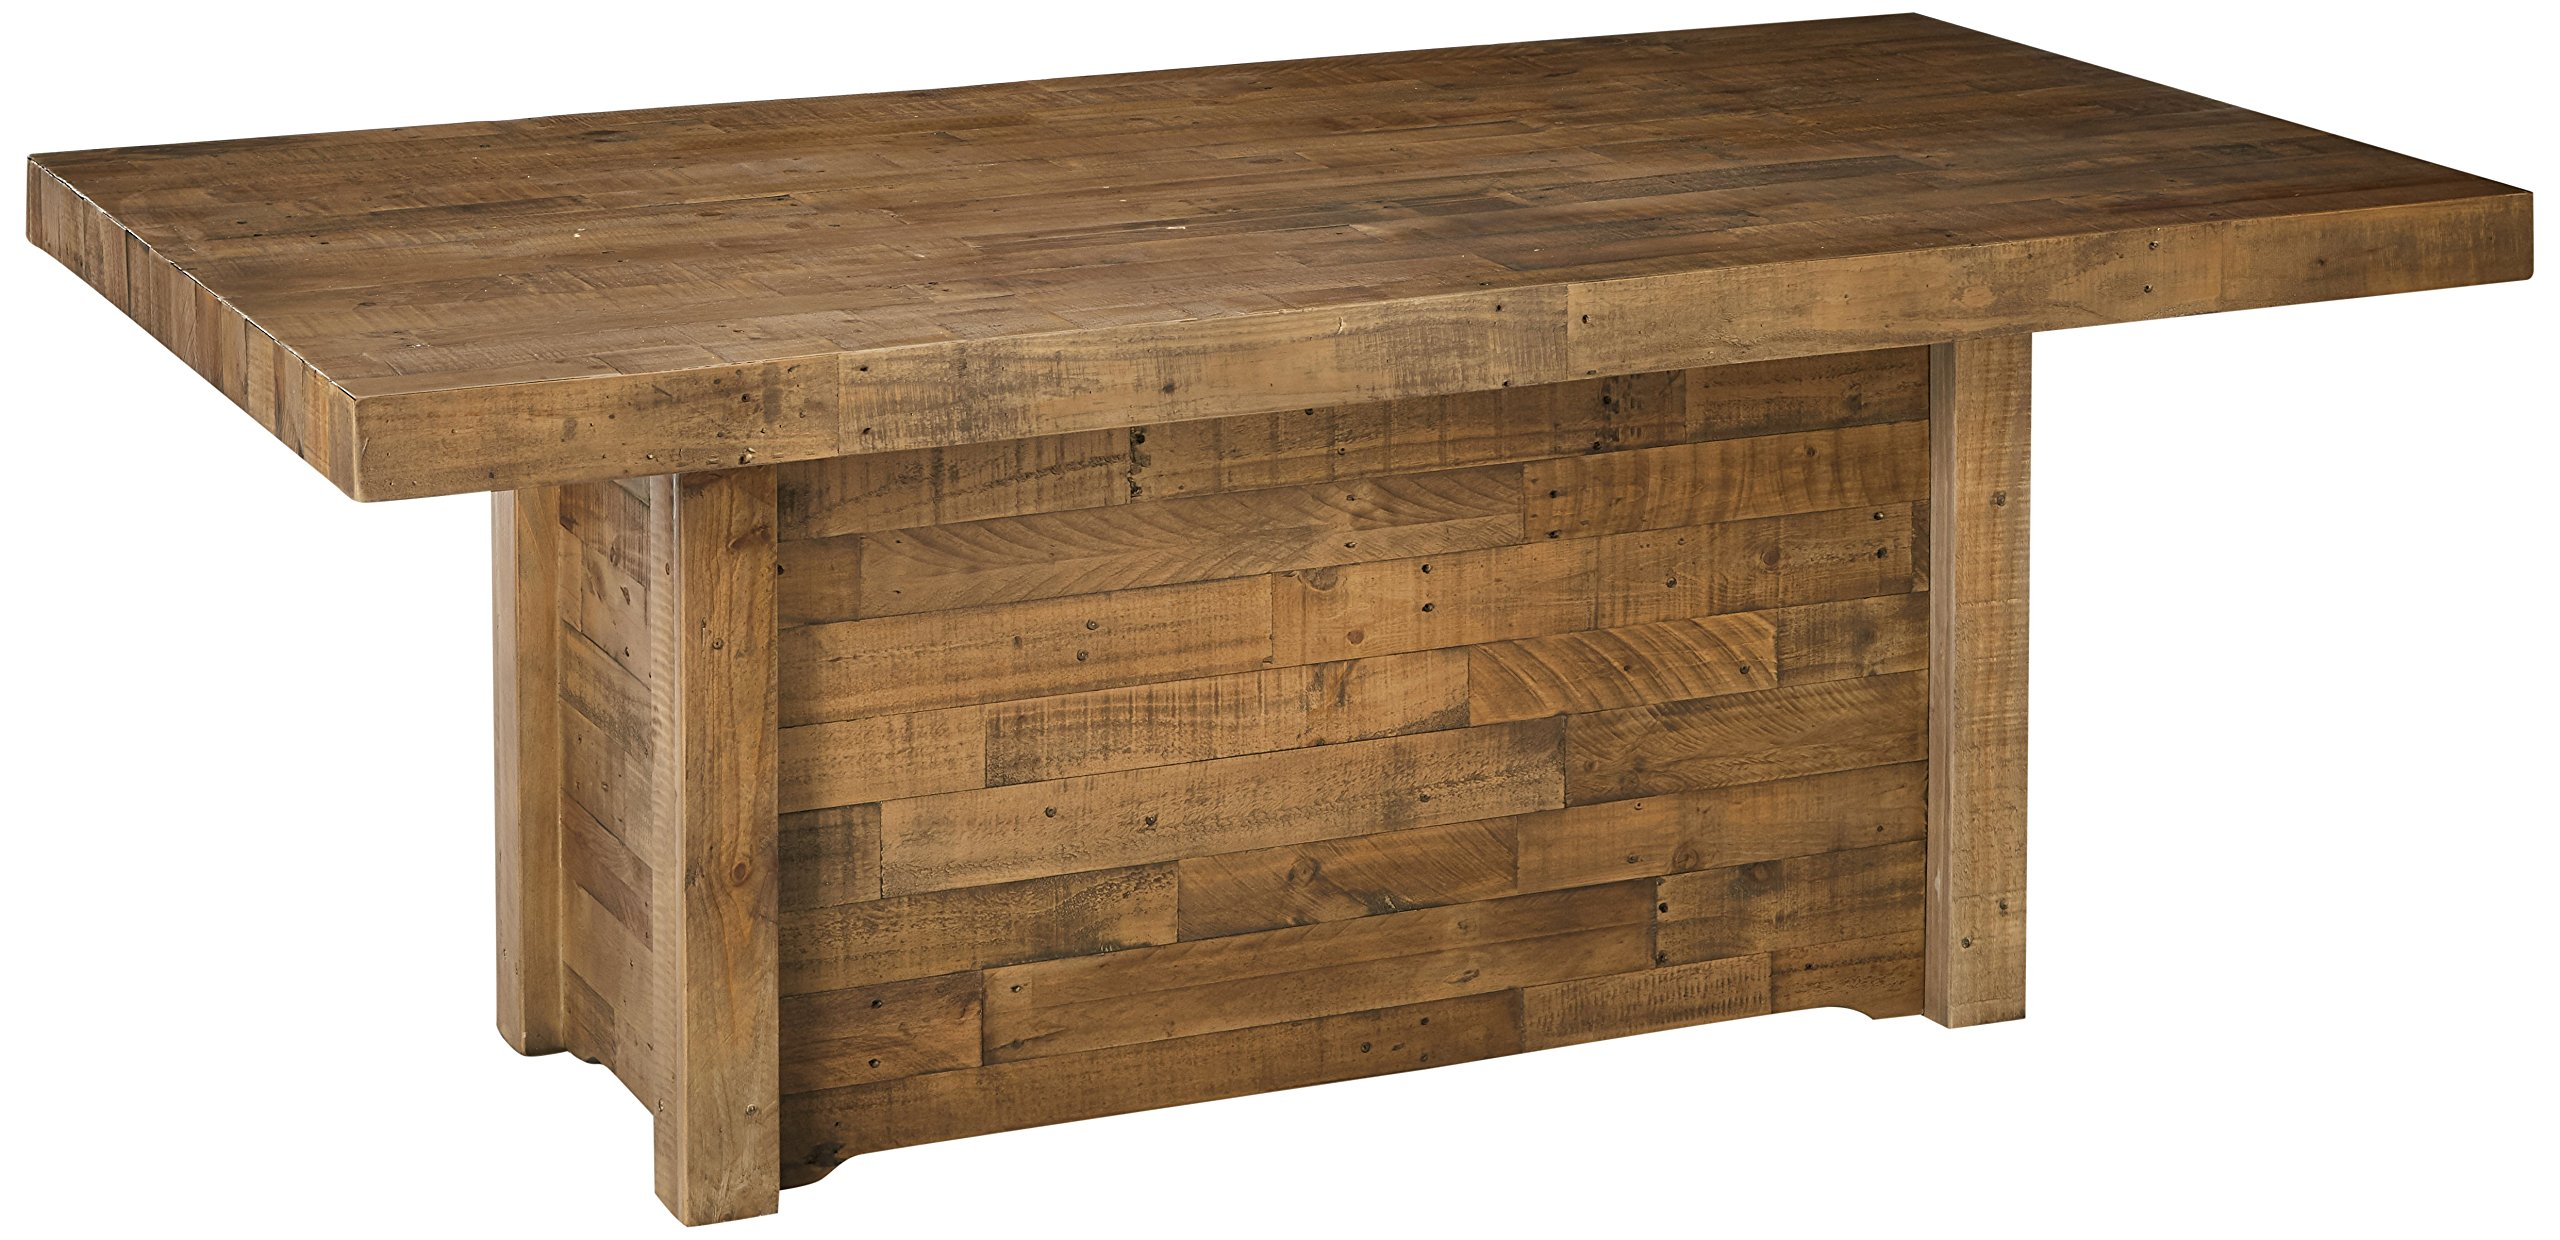 Signature Design by Ashley D775-25 Sommerford Dining Table, Summerford by Signature Design by Ashley